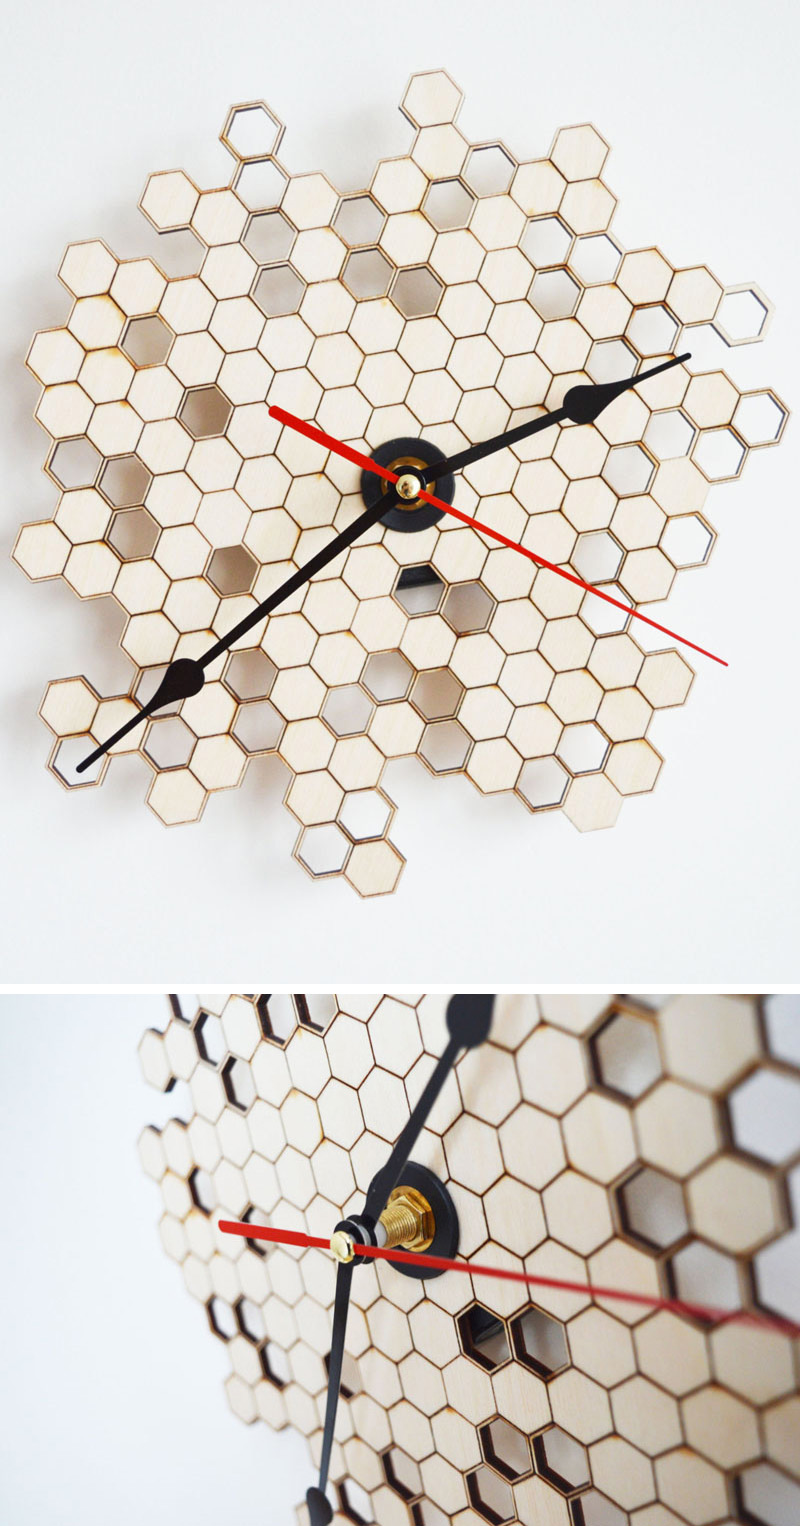 Natural untreated birch plywood has been laser cut and engraved to create this unique, modern honeycomb wood wall clock